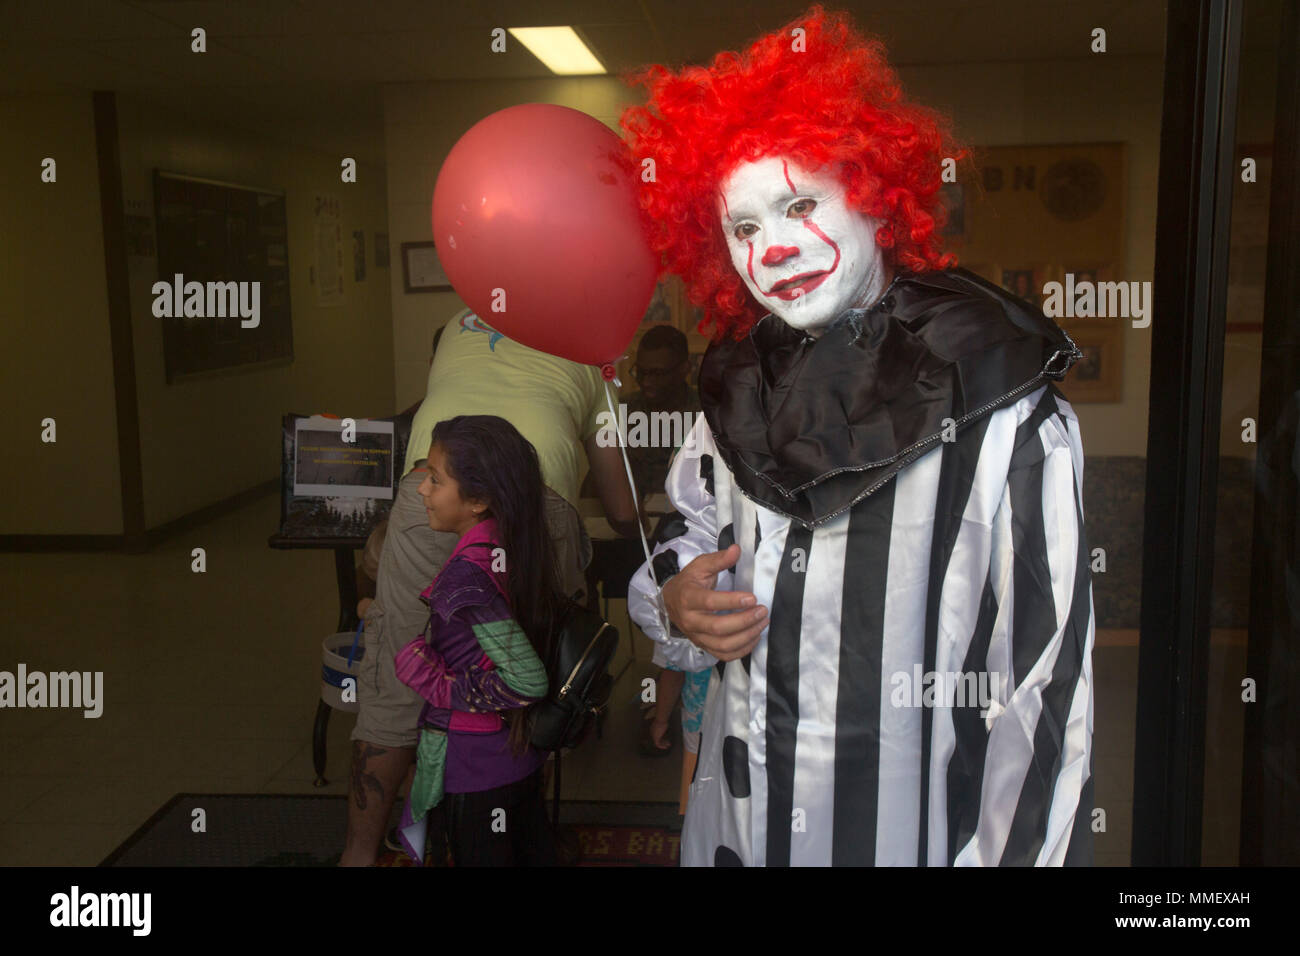 """Sgt. Maj. Phillip Billiot, sergeant major of Headquarters Battalion (HQBN), dresses up as Stephen King's """"Pennywise"""" character during the Trunk-or-Treat Halloween event, Marine Corps Base Hawaii (MCBH), Oct. 27, 2017. The event invited Marines, Sailors, and their families to dress up, decorate their vehicles, and attend the haunted house organized by the battalion's family readiness officer and senior leadership. Social events hosted aboard MCBH accommodate a positive community which fosters, develops and promotes resiliency within the installation. (U.S. Marine Corps photo by Lance Cpl. Luke  - Stock Image"""